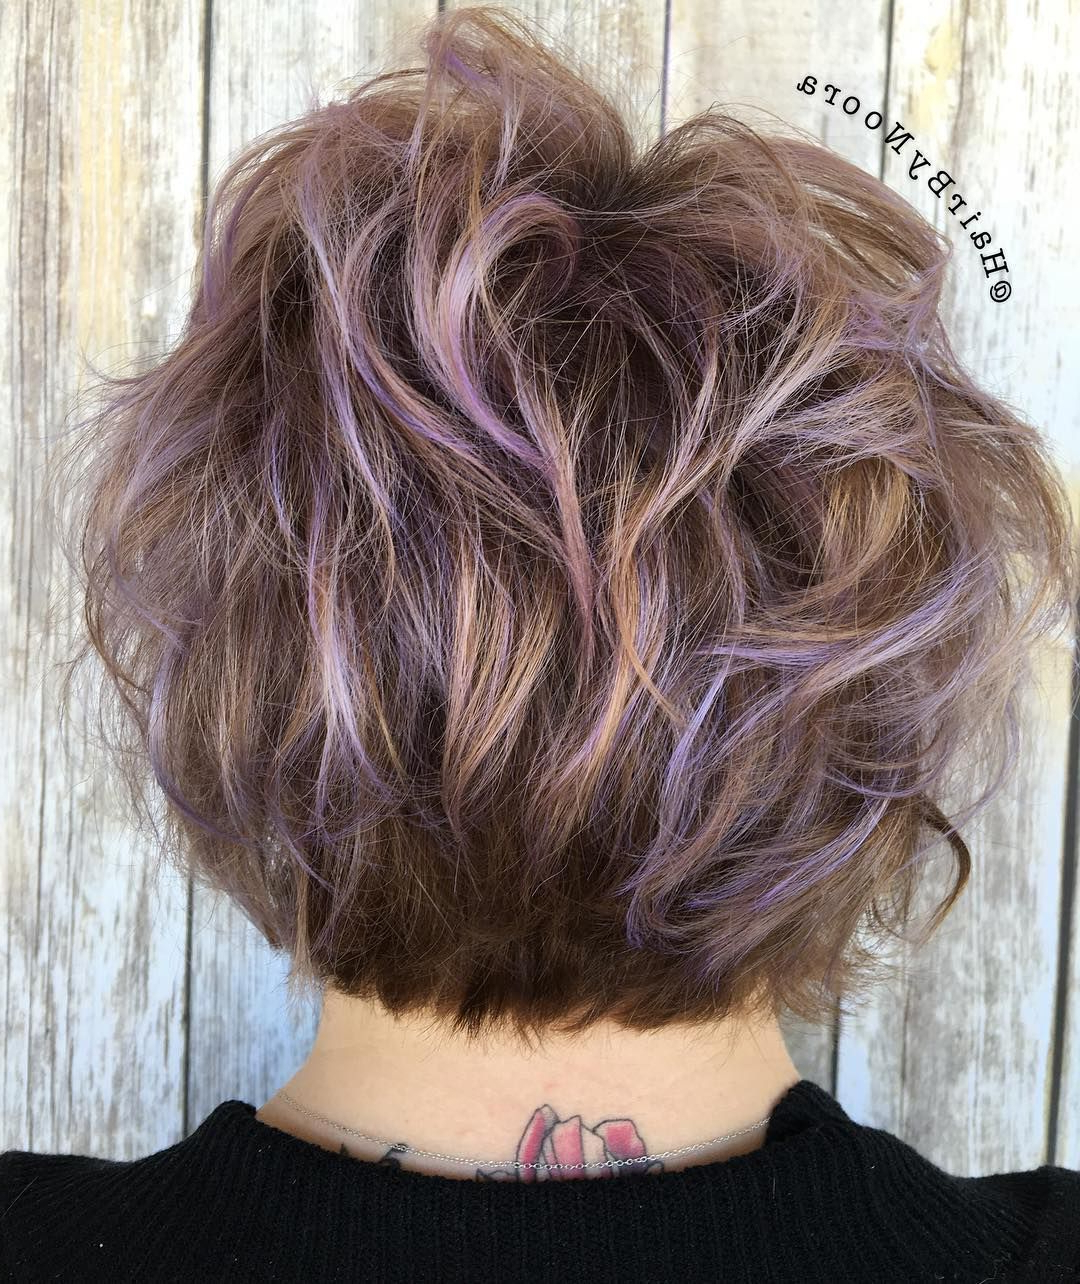 45 Ideas For Light Brown Hair With Highlights And Lowlights Intended For Choppy Brown And Lavender Bob Hairstyles (View 13 of 20)